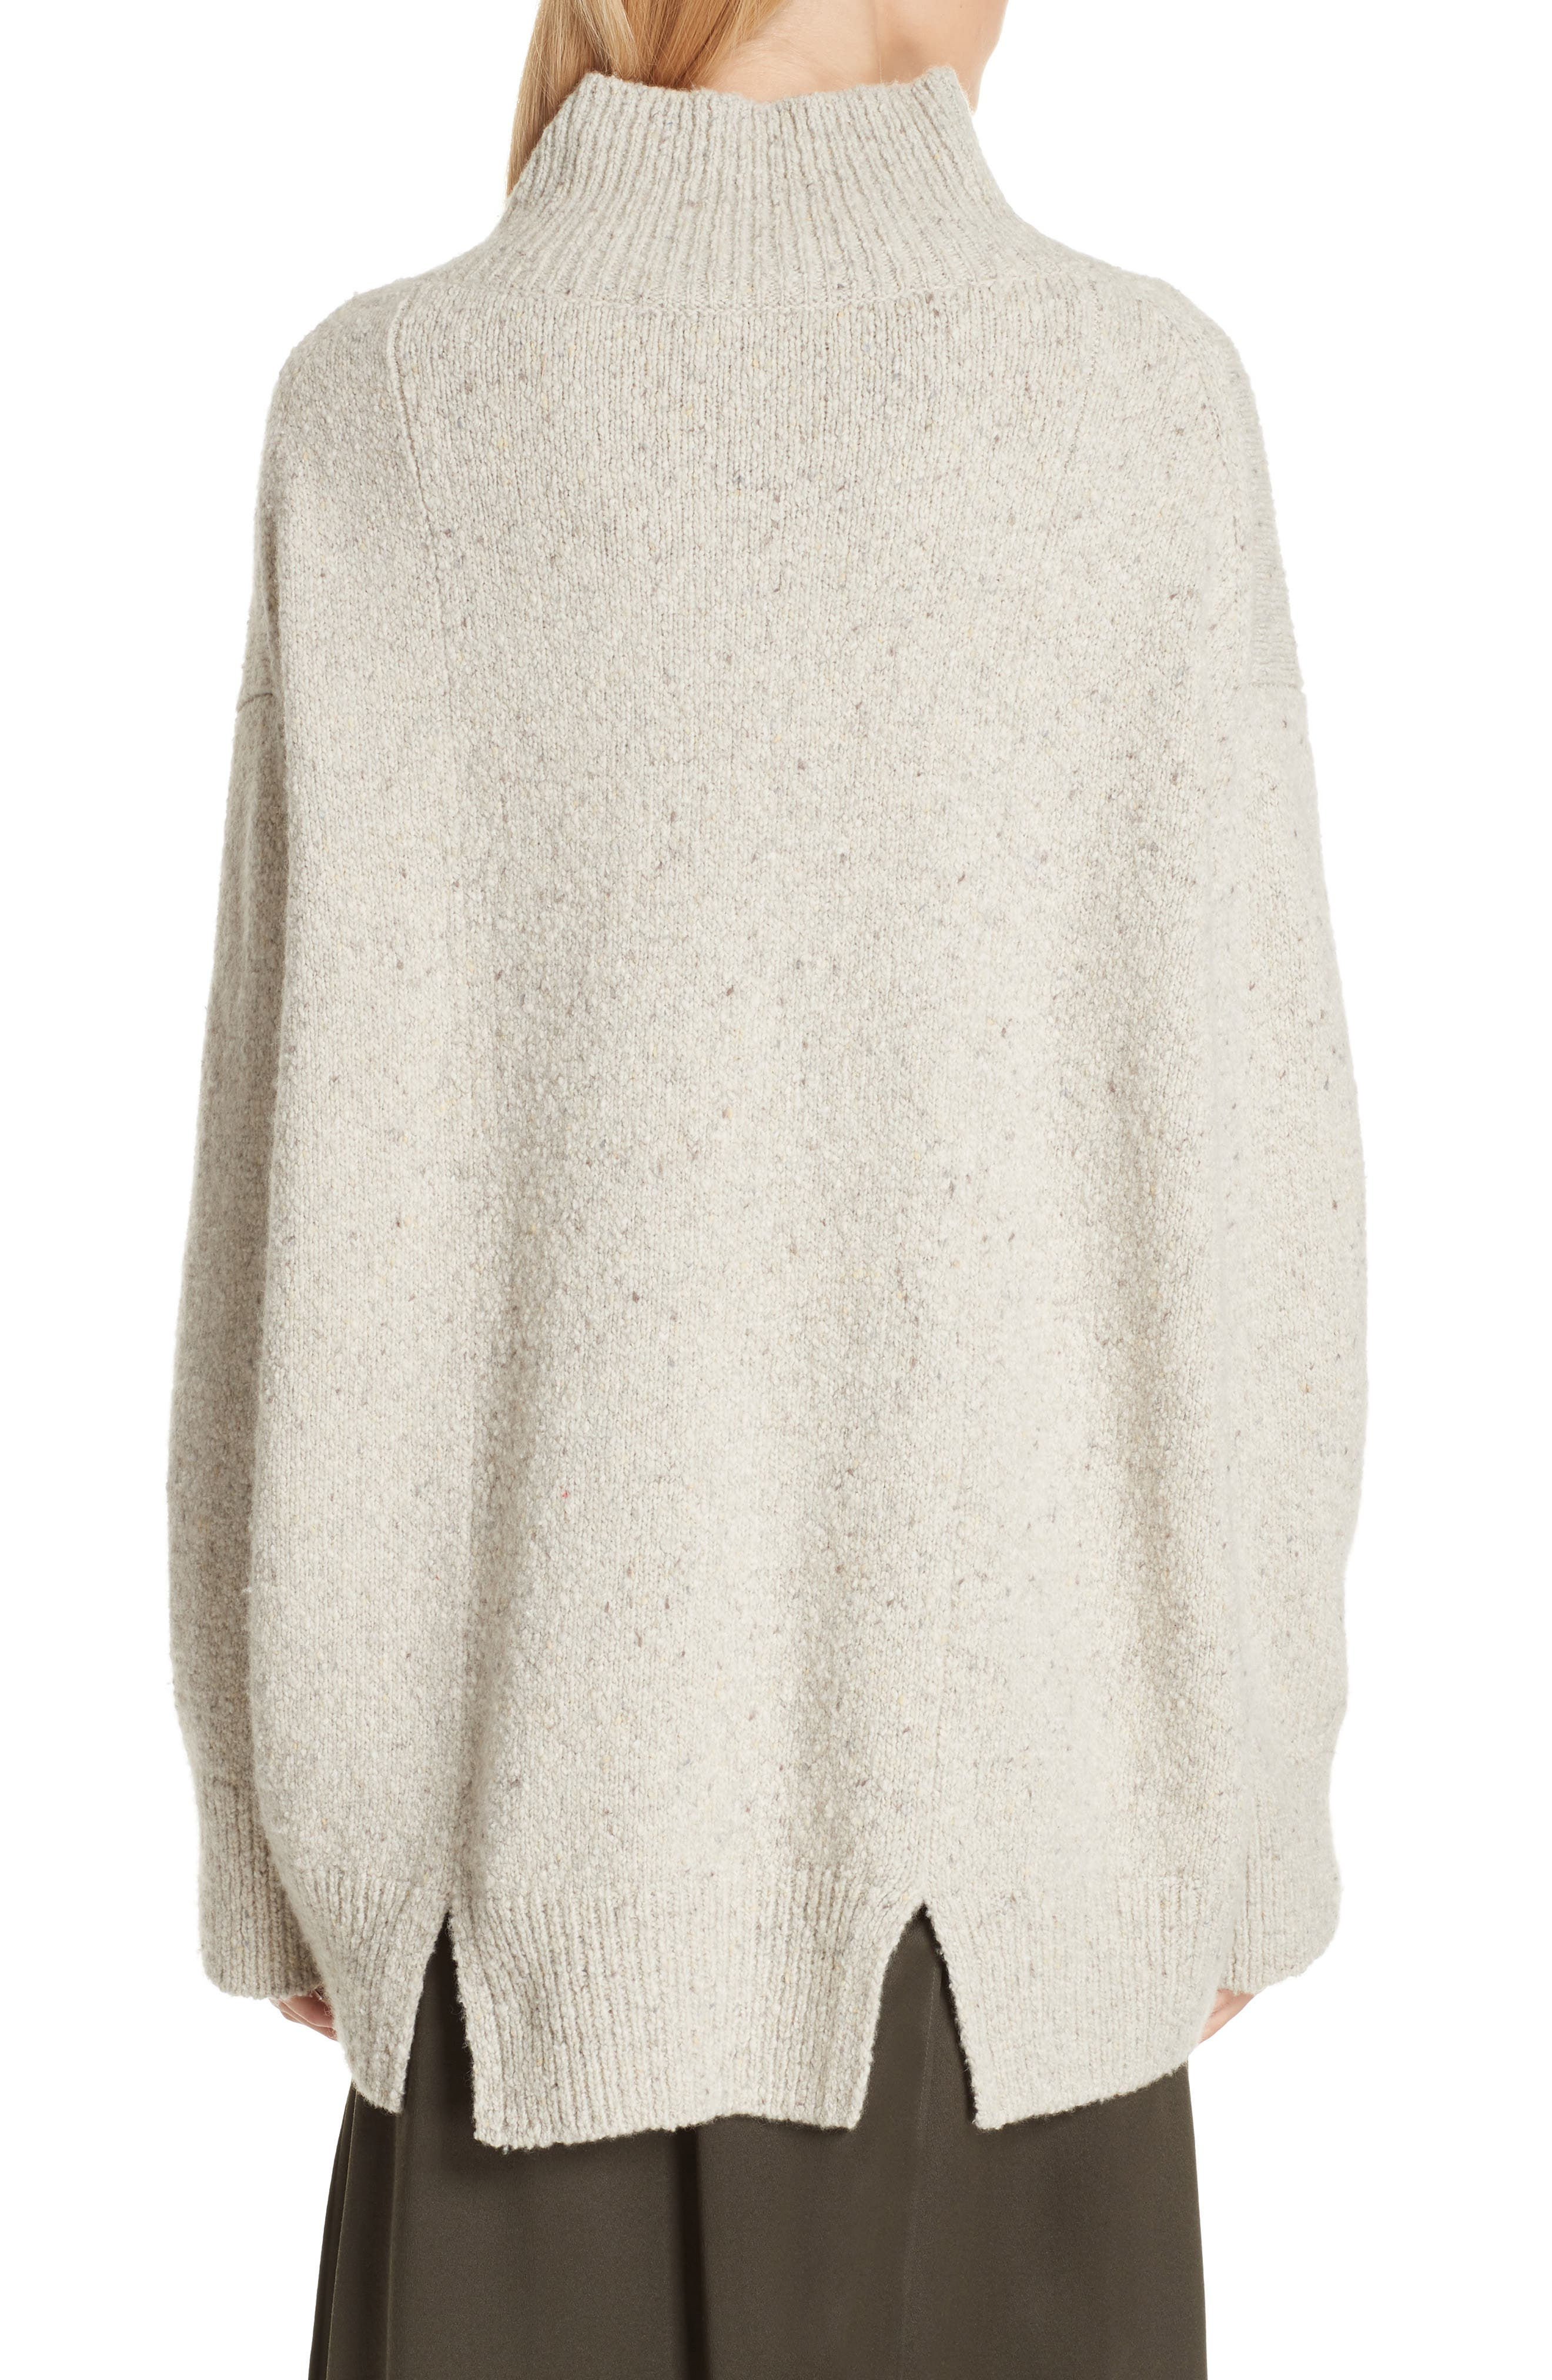 Oversize Cashmere Sweater,                             Alternate thumbnail 2, color,                             BUTTERMILK